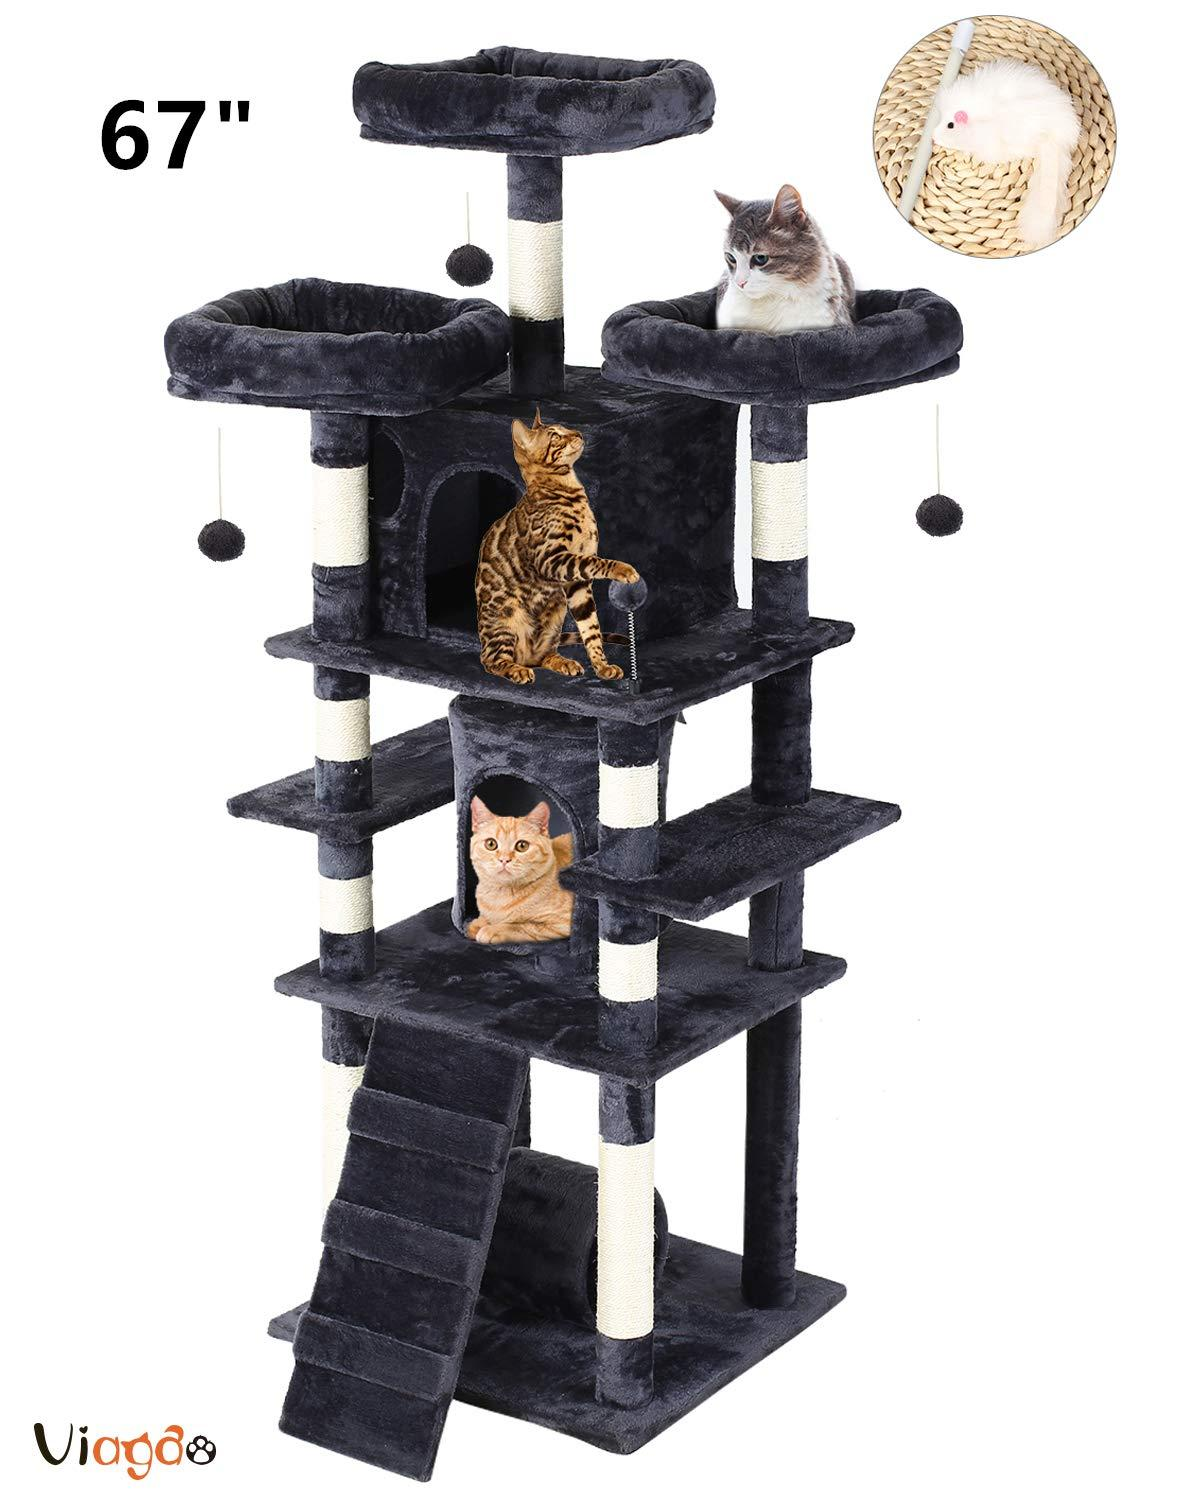 67 inch Multi-Level <font><b>Cat</b></font> <font><b>Tree</b></font> <font><b>for</b></font> <font><b>Large</b></font> <font><b>Cats</b></font>, Stable <font><b>Cat</b></font> Tower Condo Furniture with Scratching Posts 3 Plush Perches image